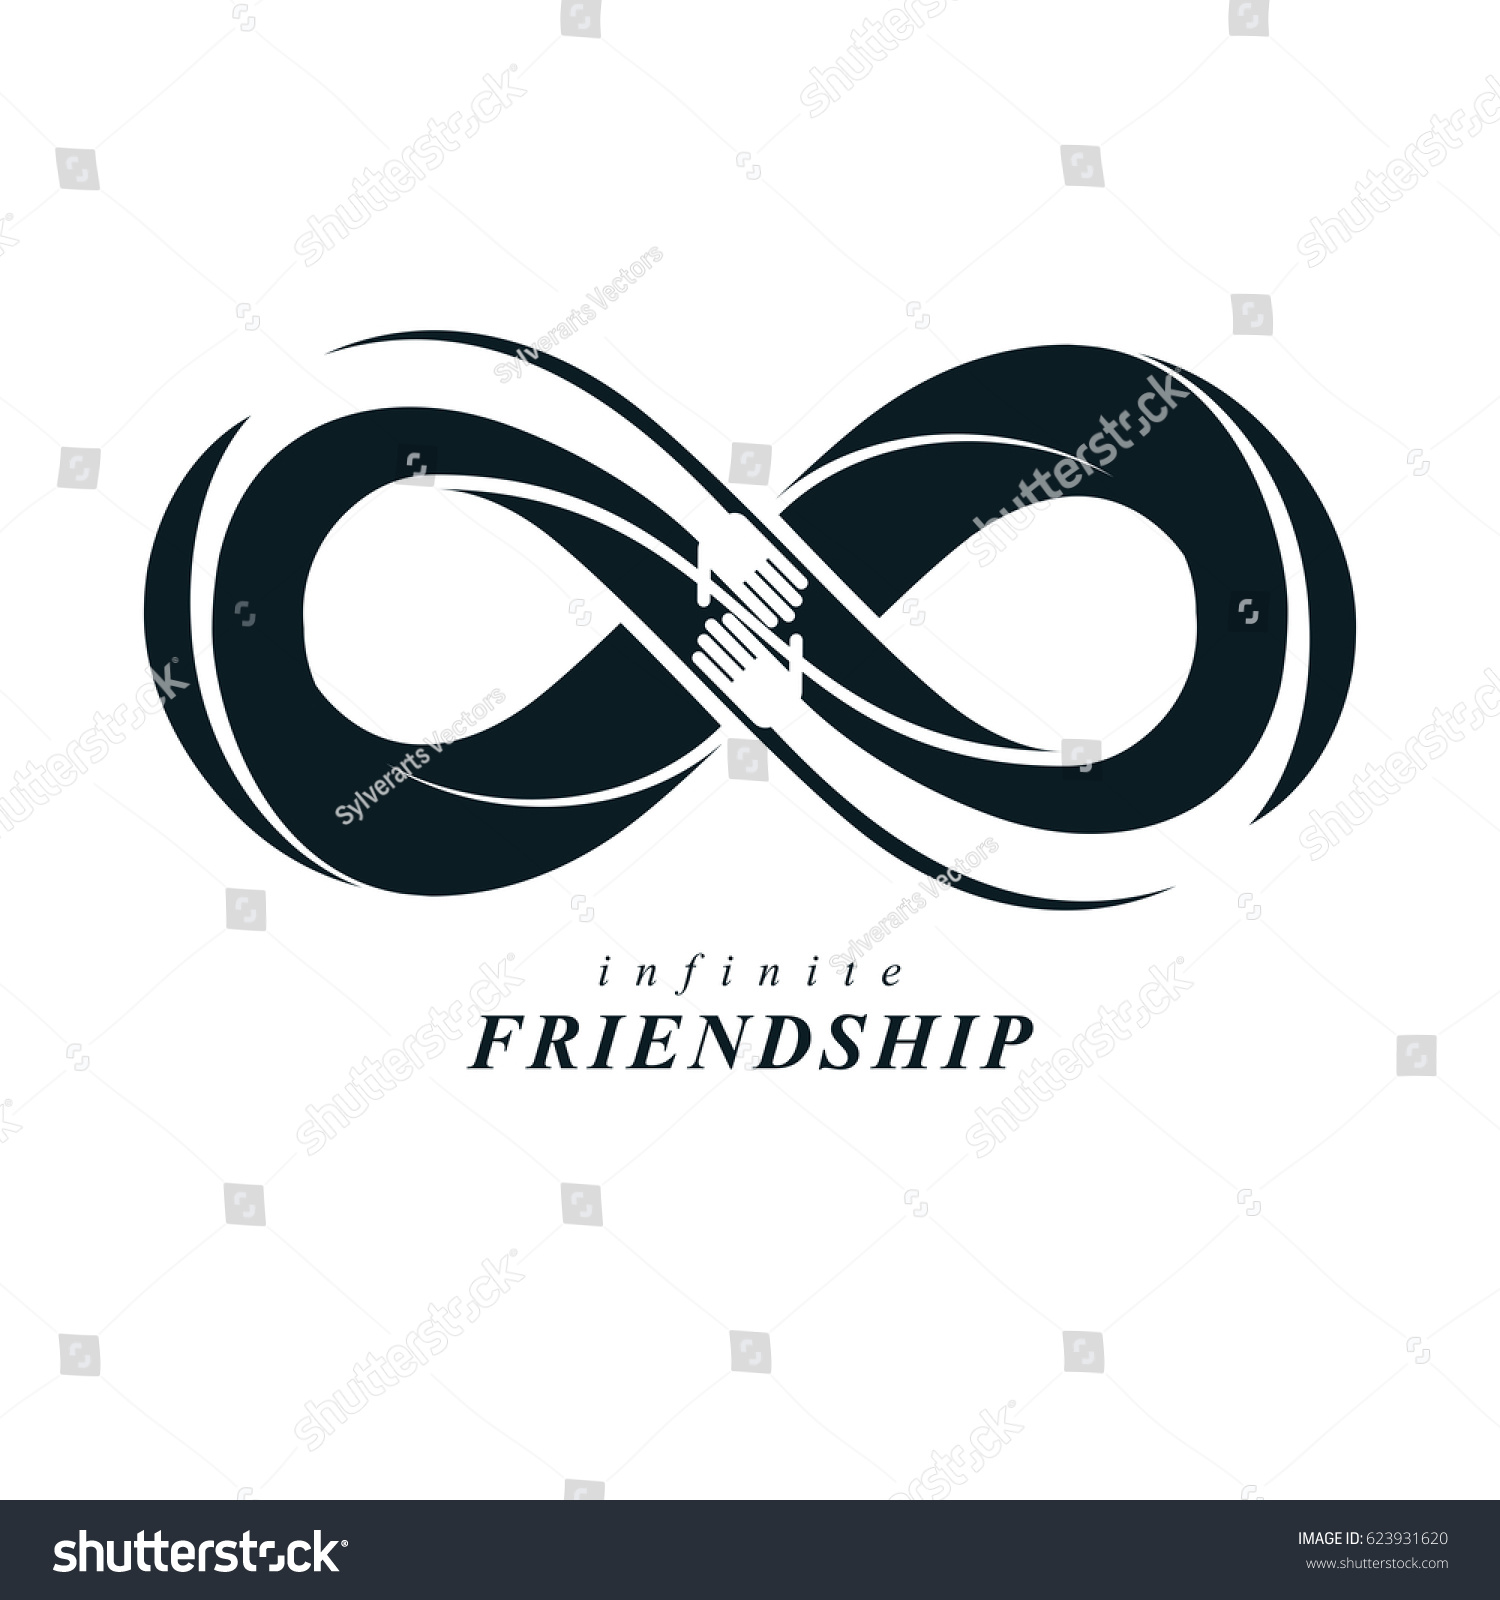 Friends forever everlasting friendship beautiful logo stock friends forever everlasting friendship beautiful logo combined with two symbols of eternity loop and biocorpaavc Images